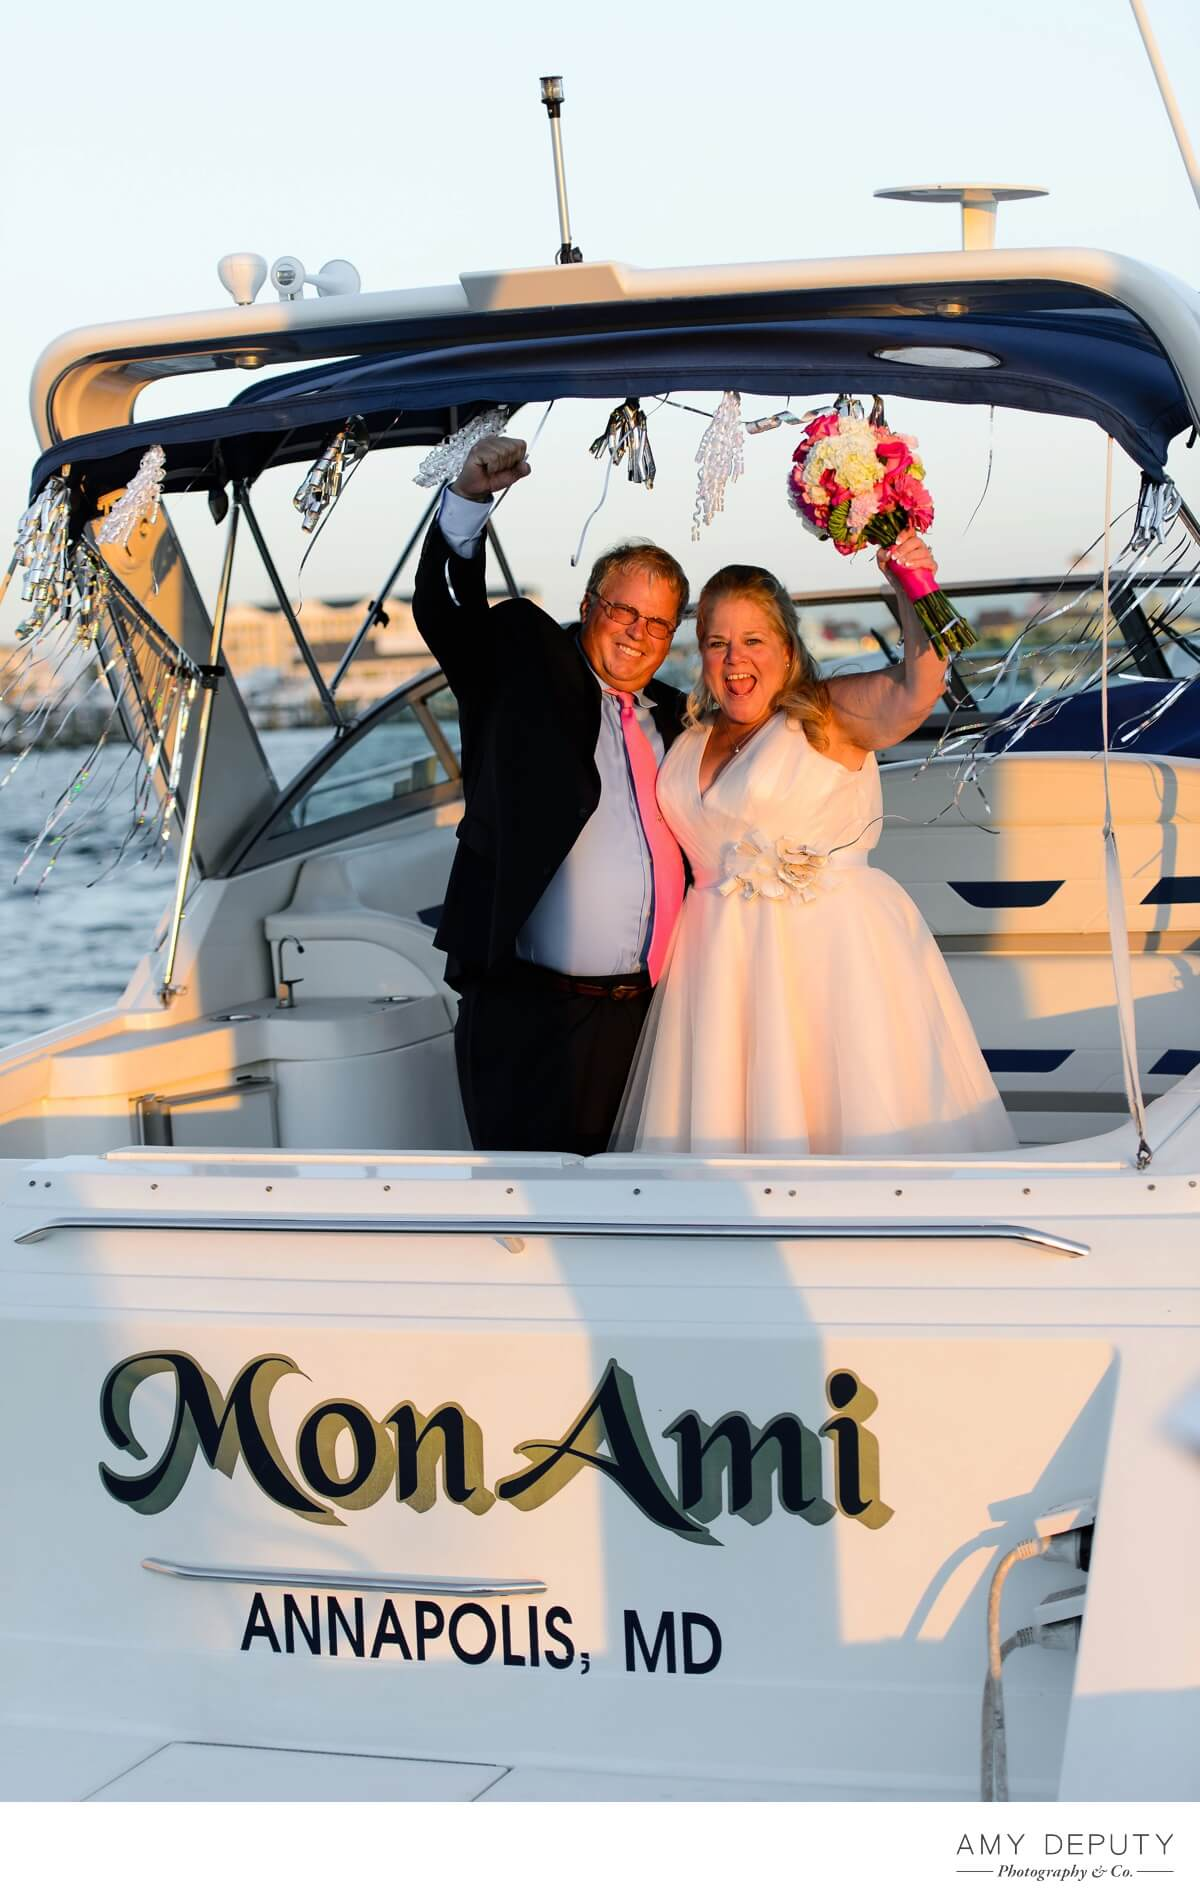 a bride and groom wave from a boat called mon ami from annapolis mar